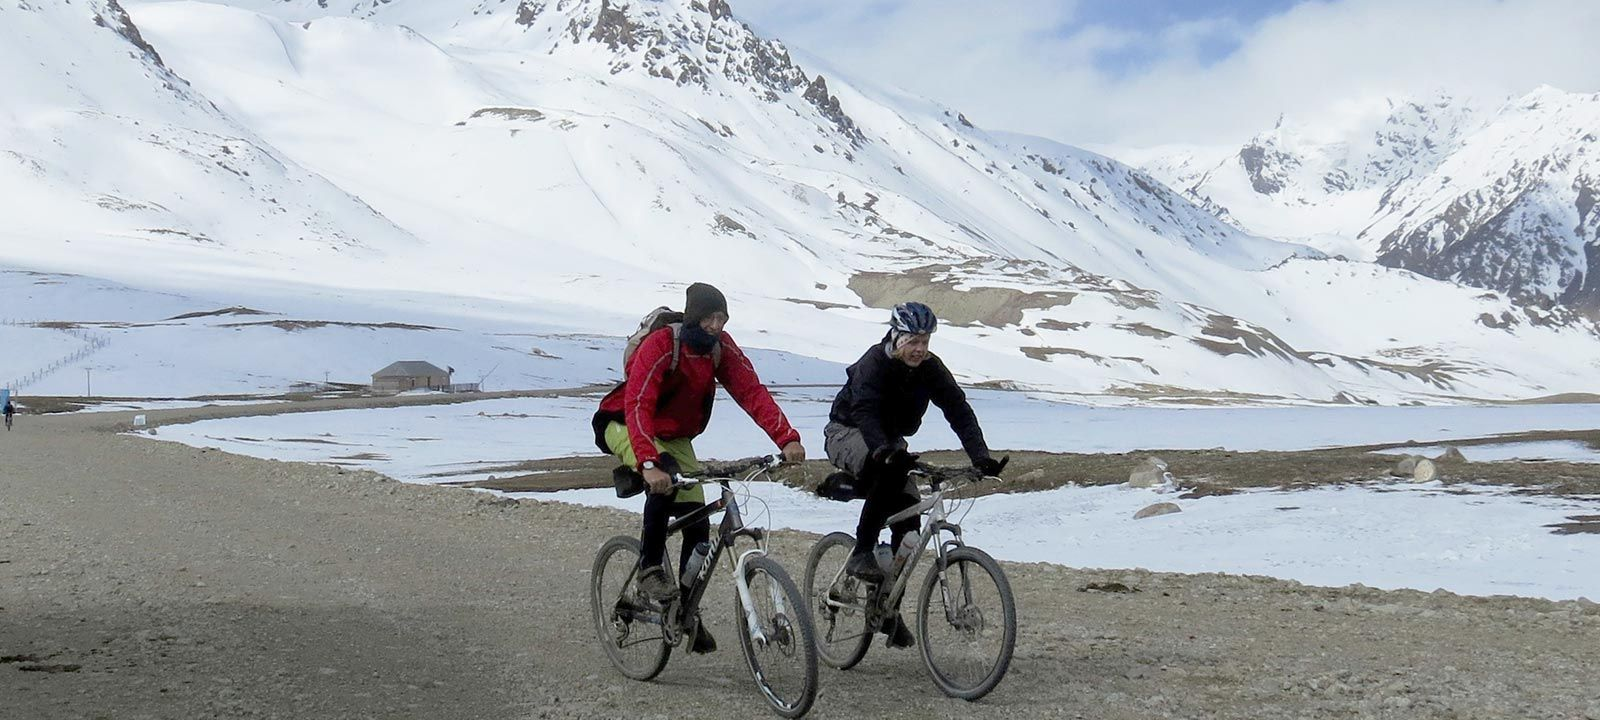 The Tibet cycling holiday offers great physical challenges and some extreme mountain bike rides combined with breath taking scenery as you cycle 'The Roof of the World'.